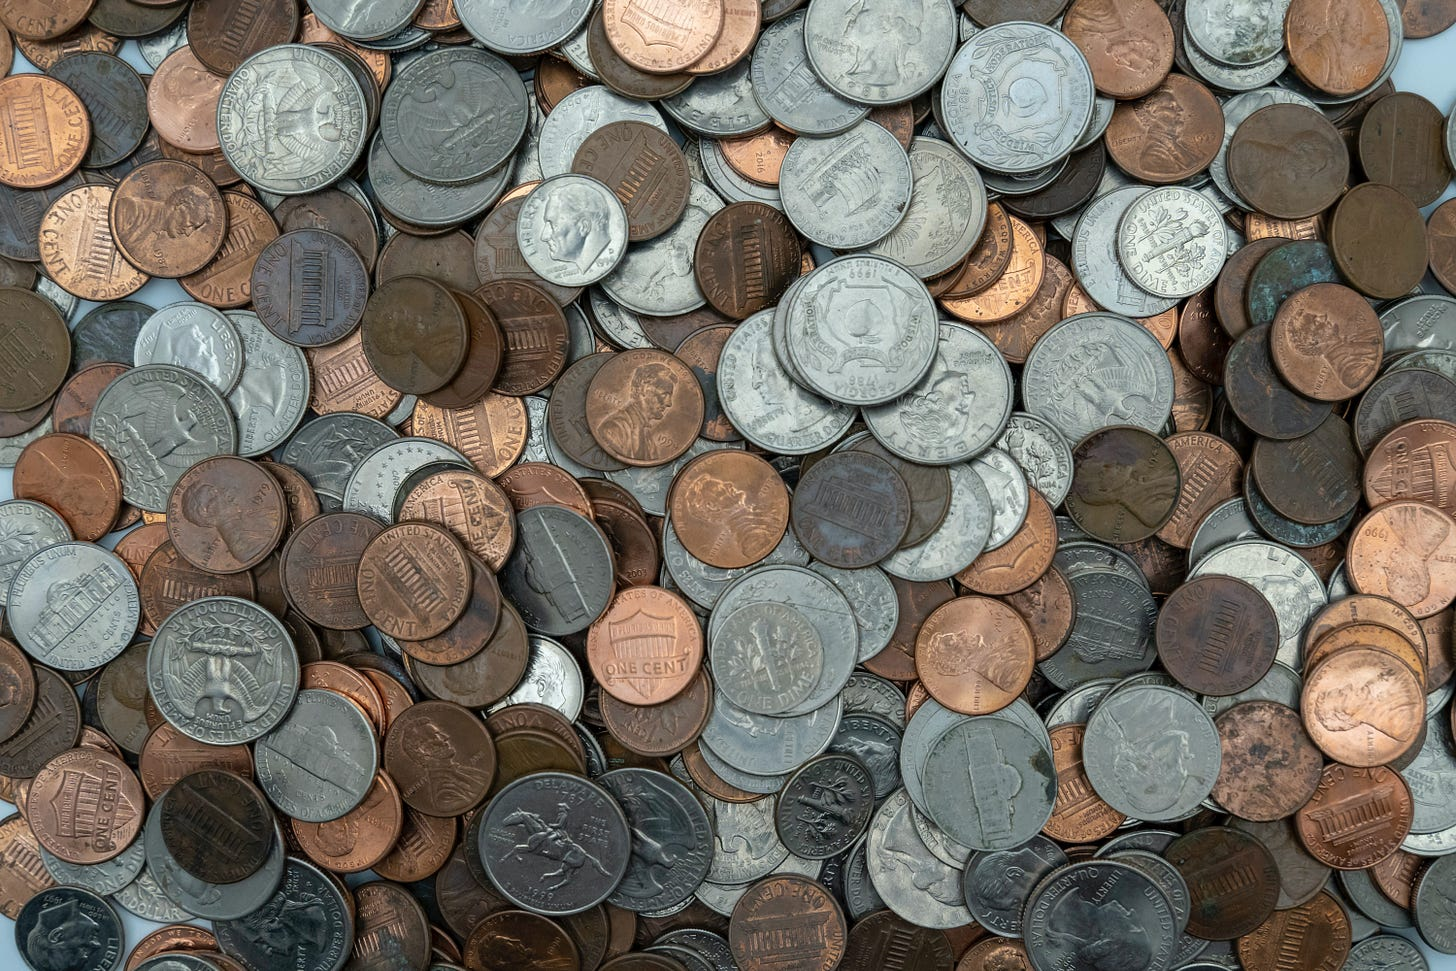 A pile of pennies, nickels, dimes, and quarters, photographed from above.